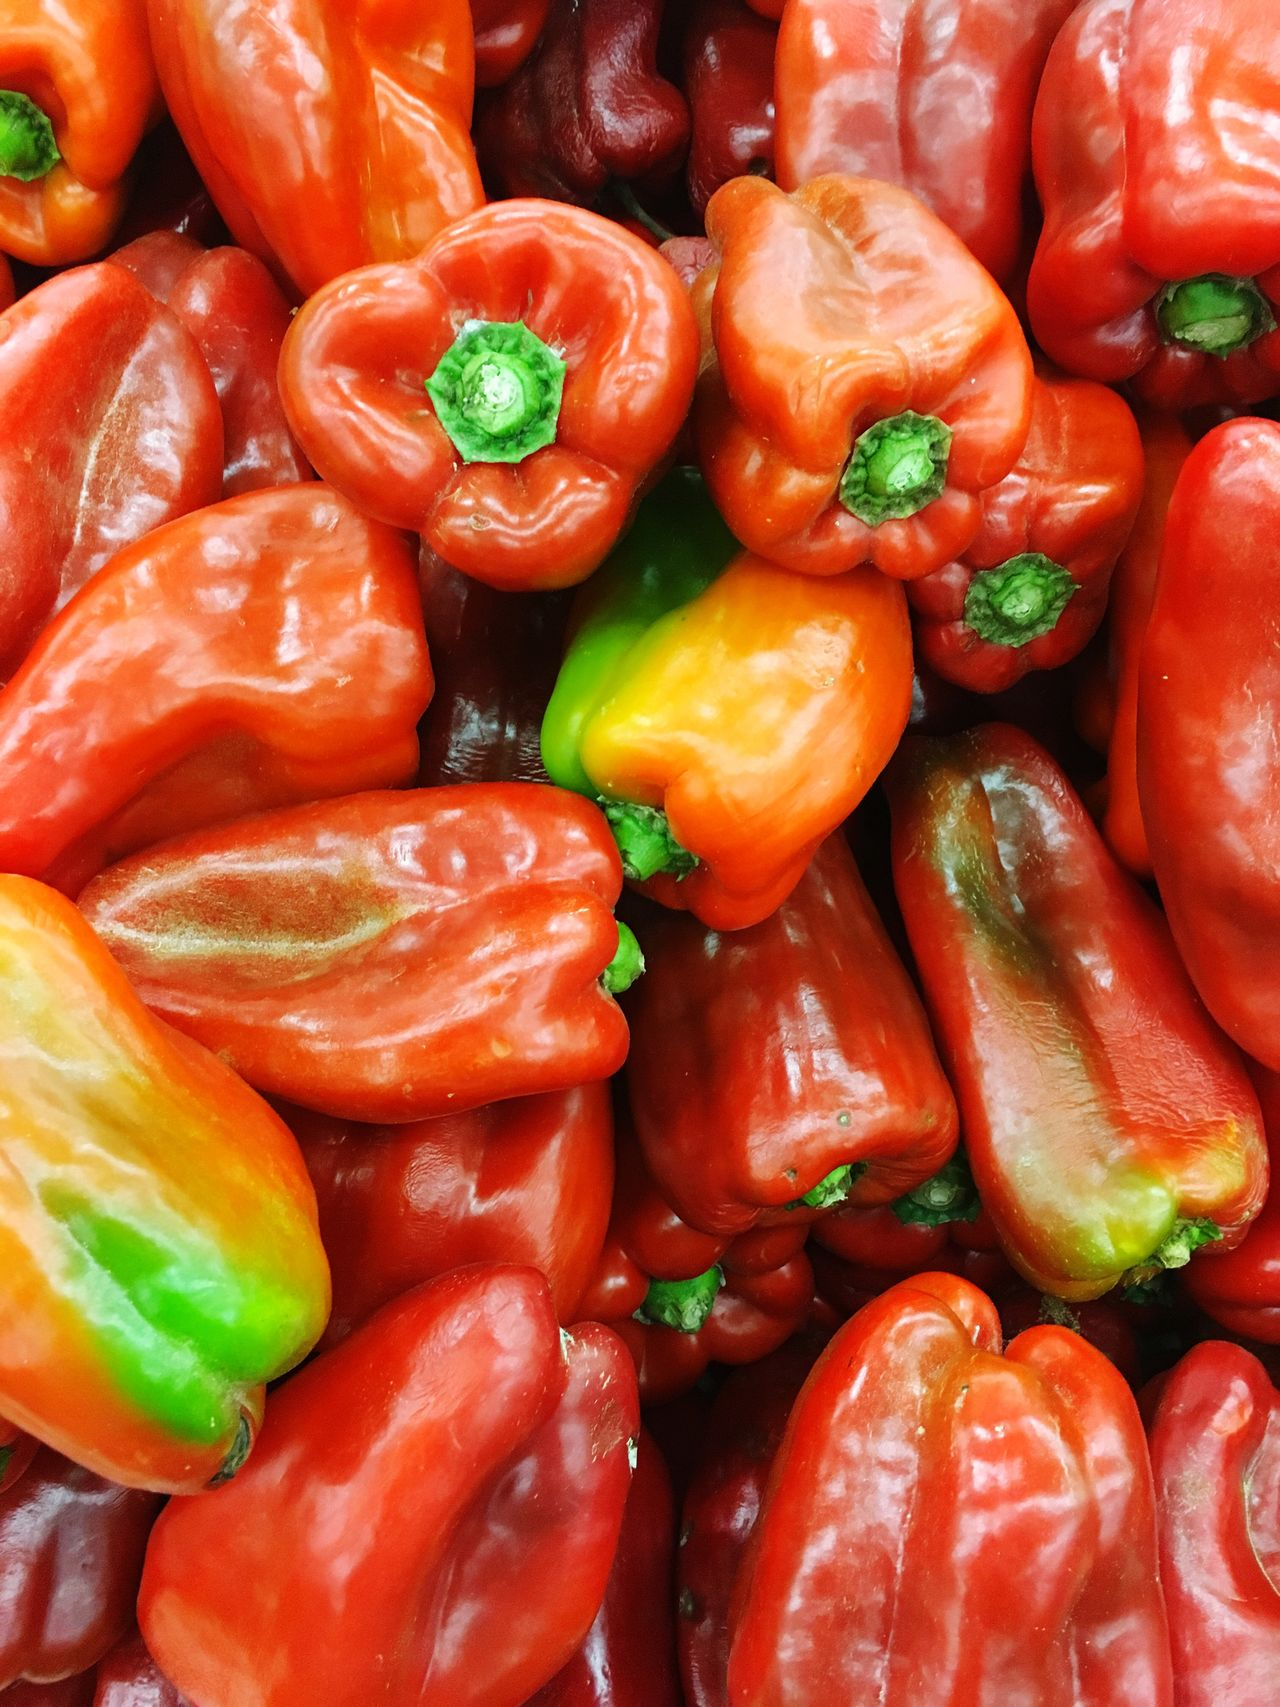 Full Frame Backgrounds Freshness Food And Drink Bell Pepper Red Bell Pepper No People Food Vegetable Red Healthy Eating Textured  Close-up Large Group Of Objects Market Nature Outdoors Day